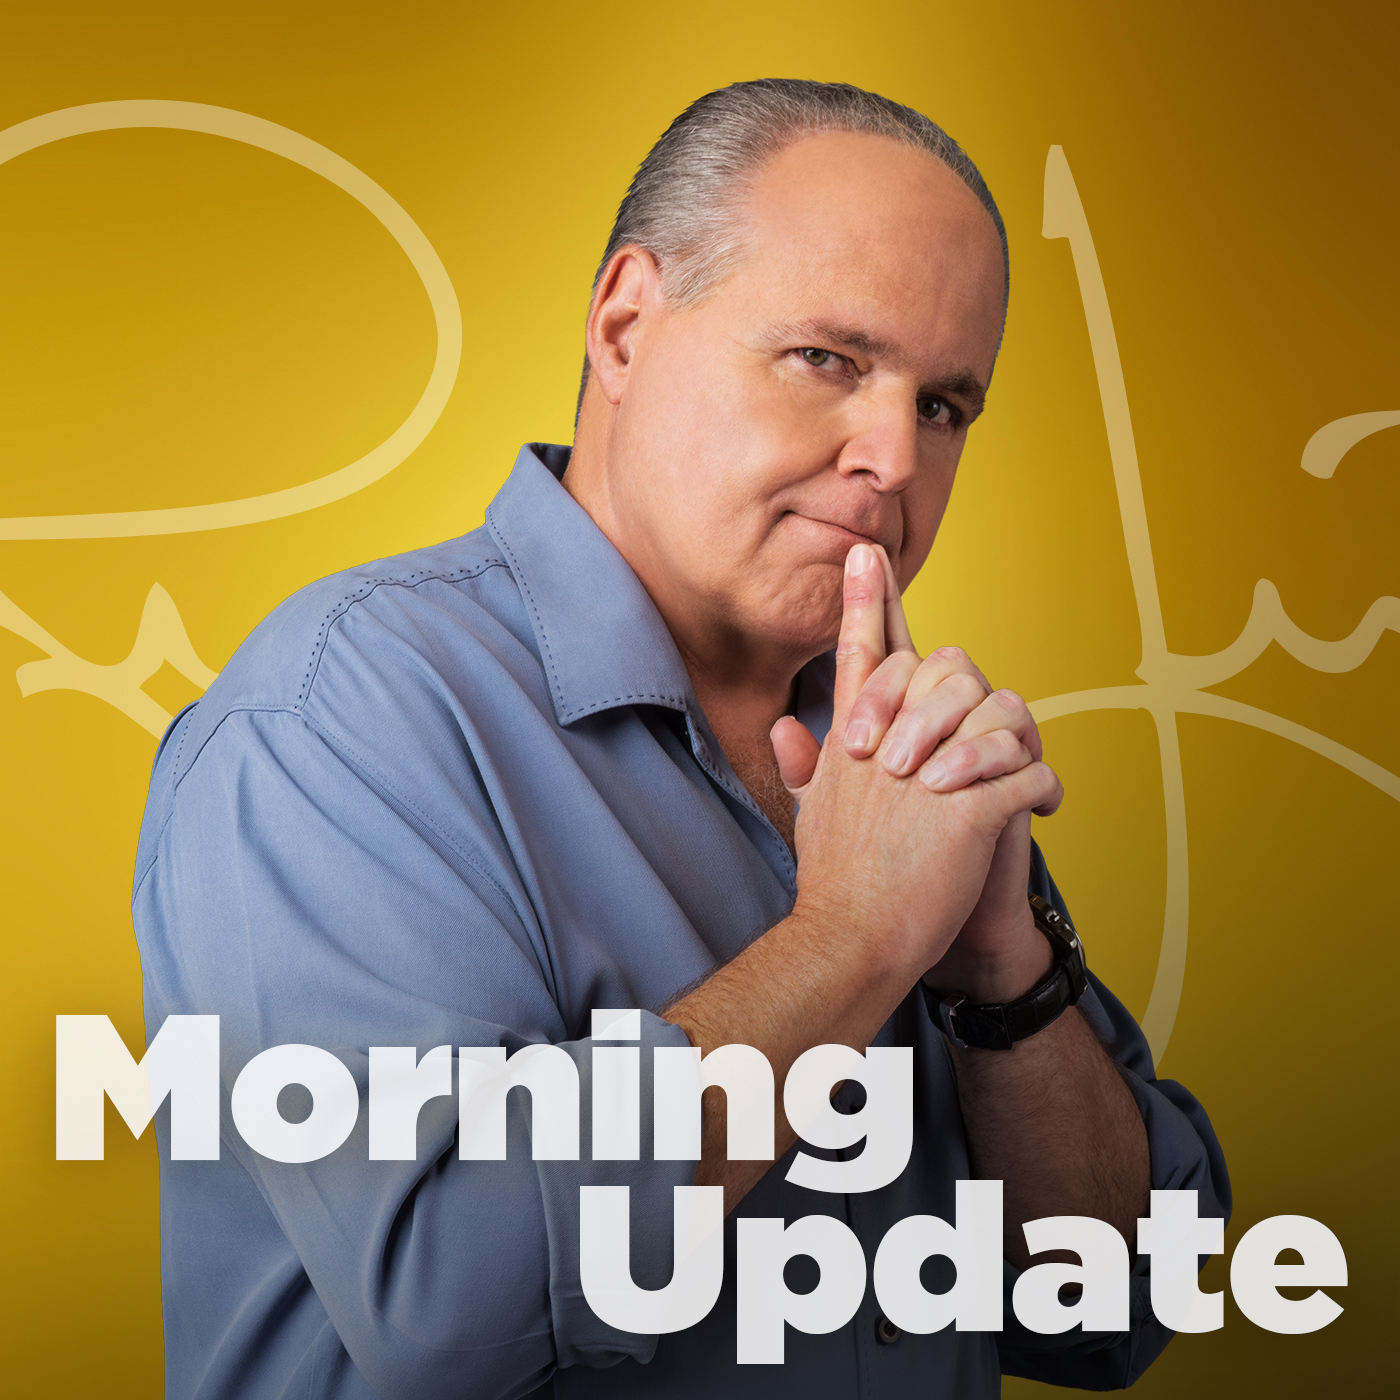 Rush Limbaugh Jan 15, 2020